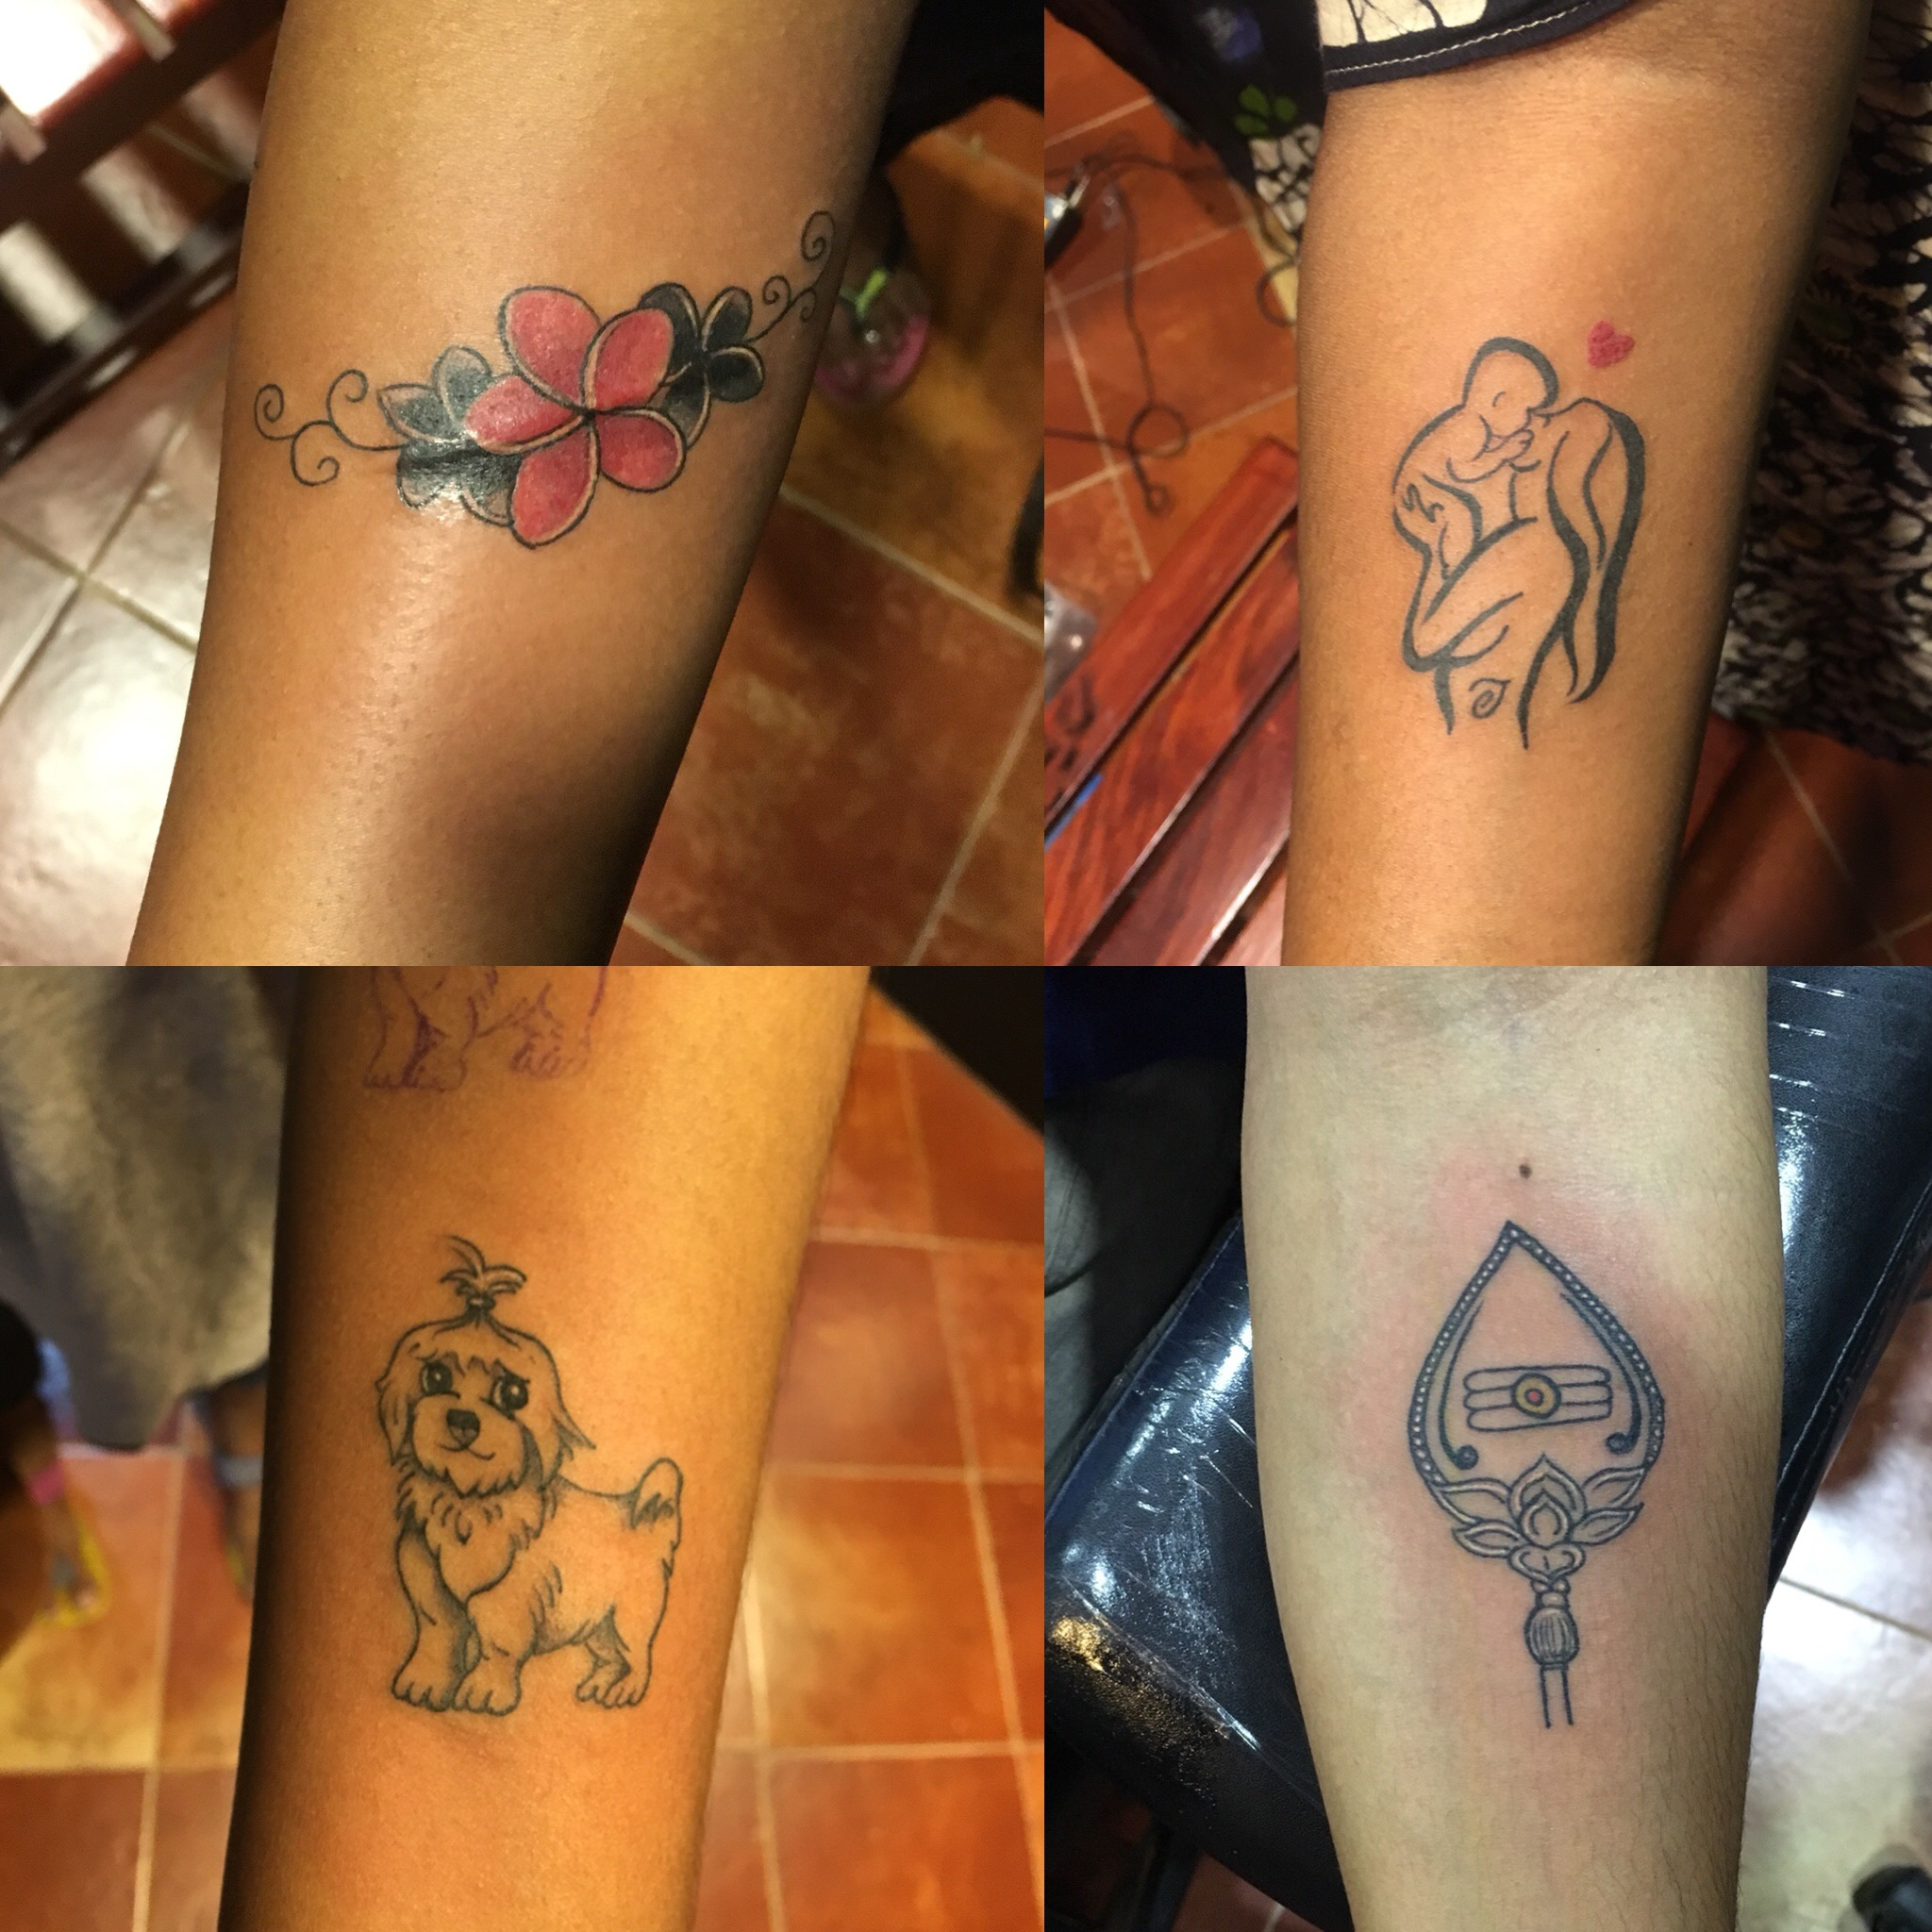 Tattoo designs for men in coimbatore